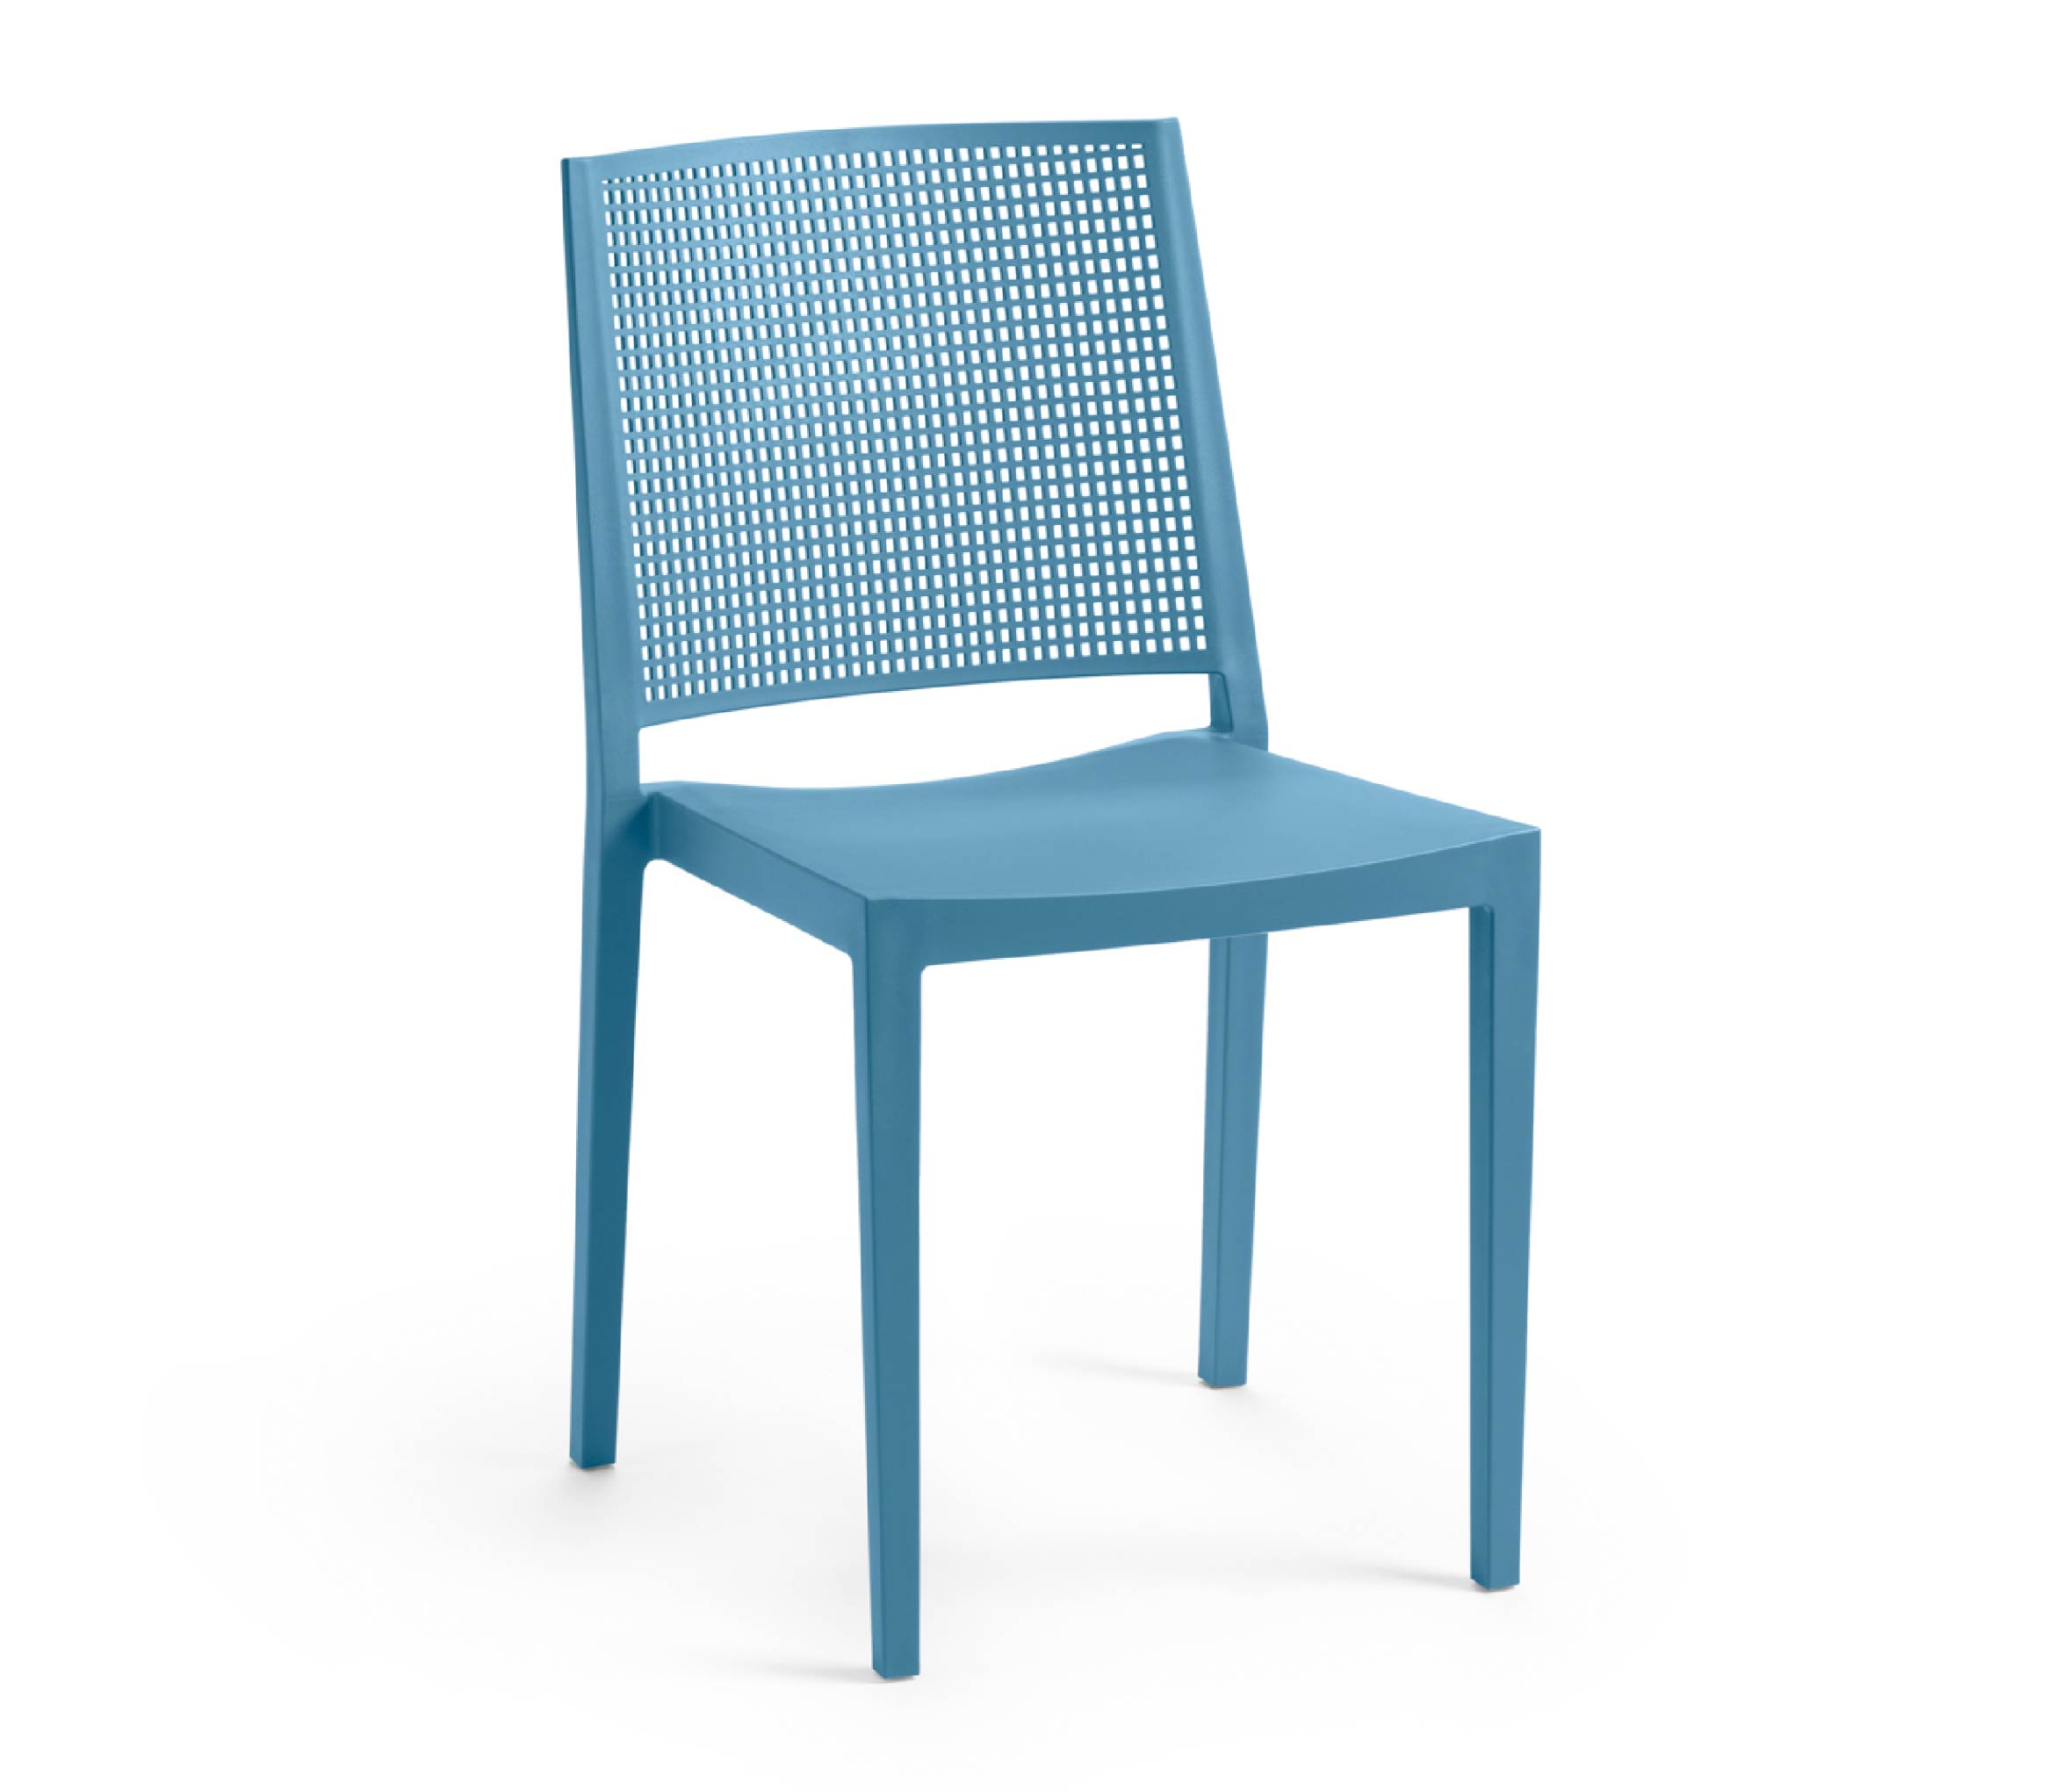 4 - TENSAI_FURNITURE_GRID_PLASTIC_blue_chair_color_white_background_612_001